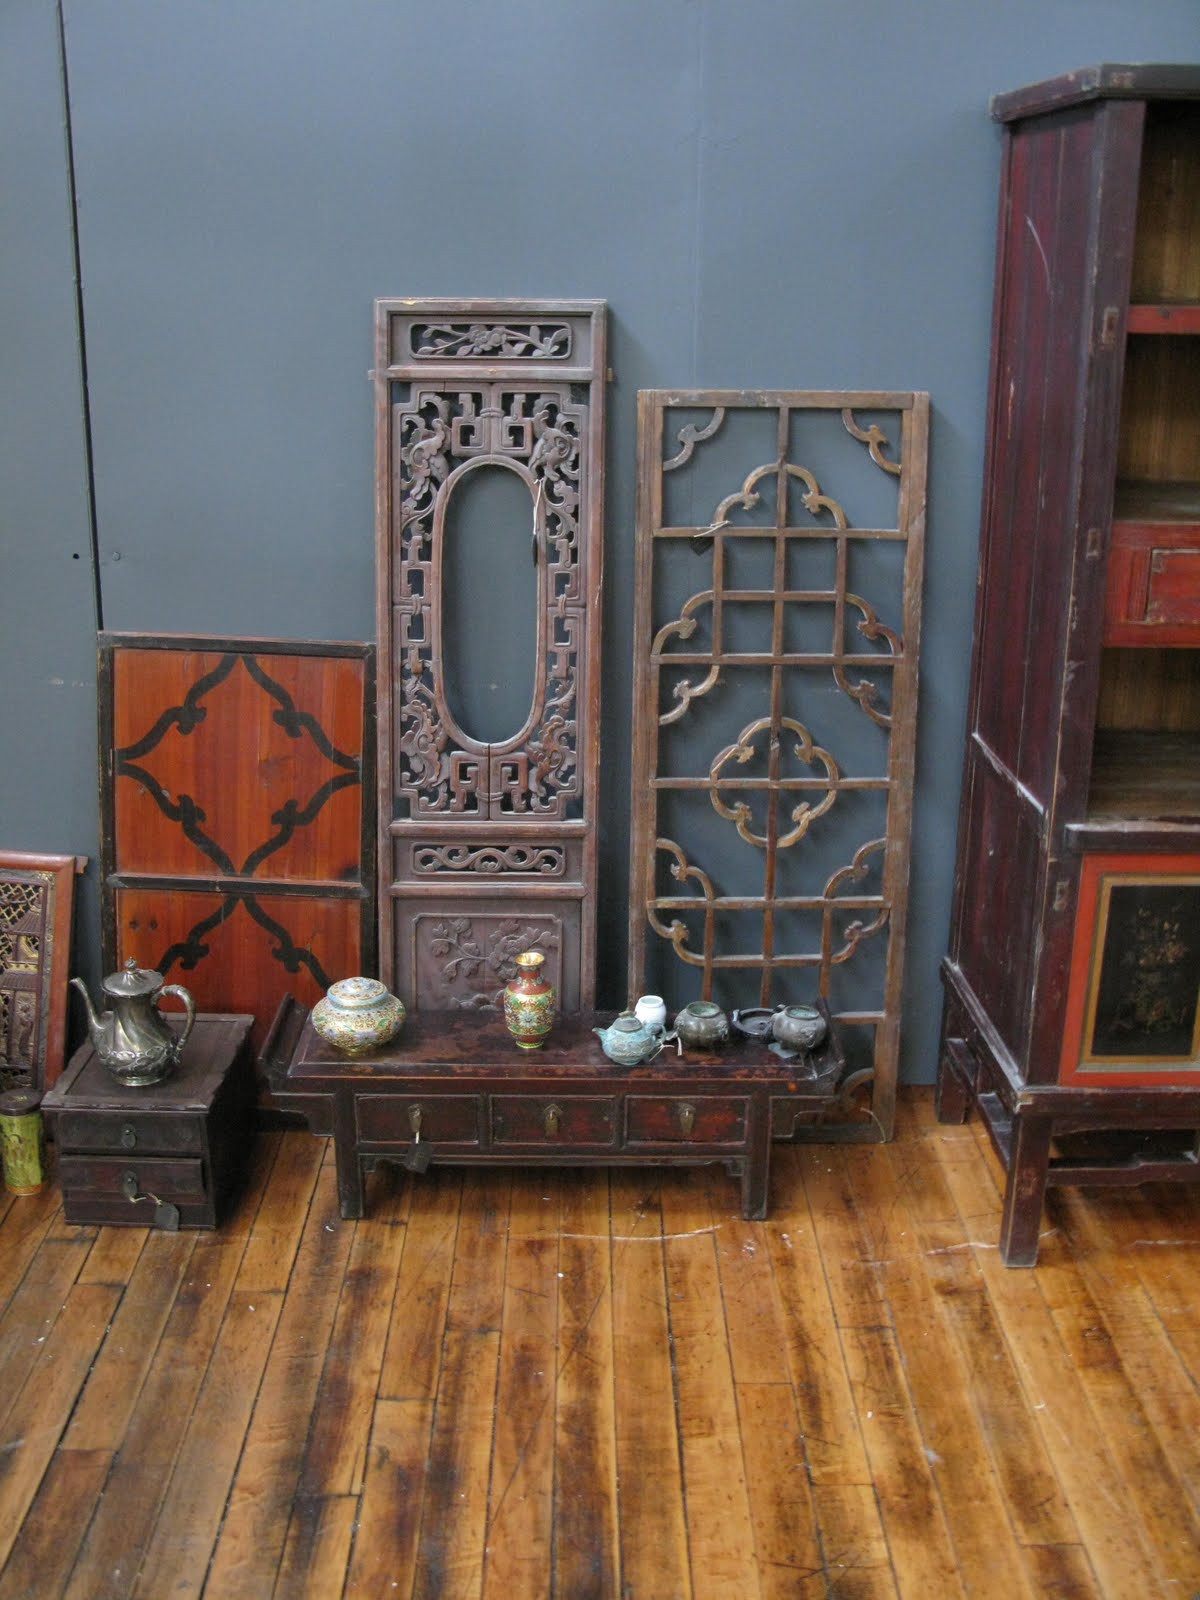 Best ideas about Asian Wall Art . Save or Pin Oriental Screens and Wall Decor Now.